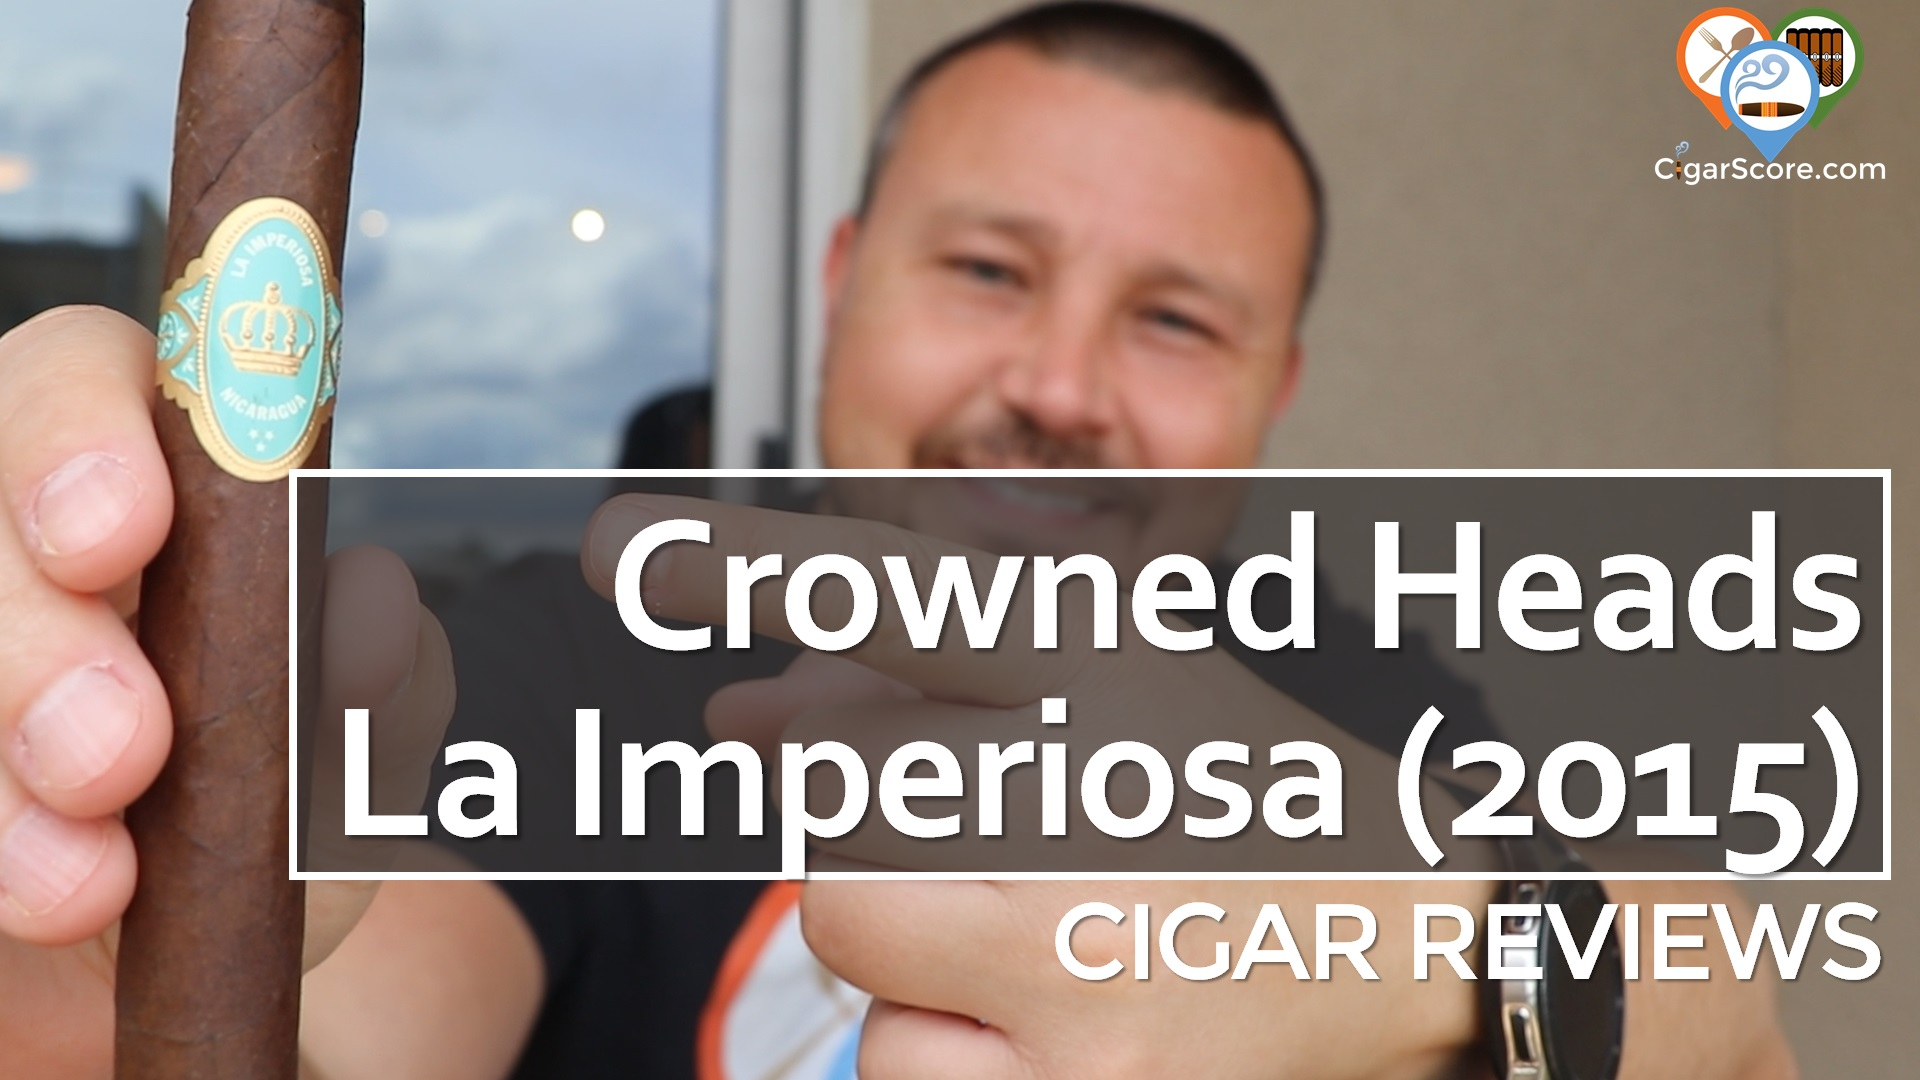 Cigar Review - Crowned Heads La Imperiosa Double Robusto